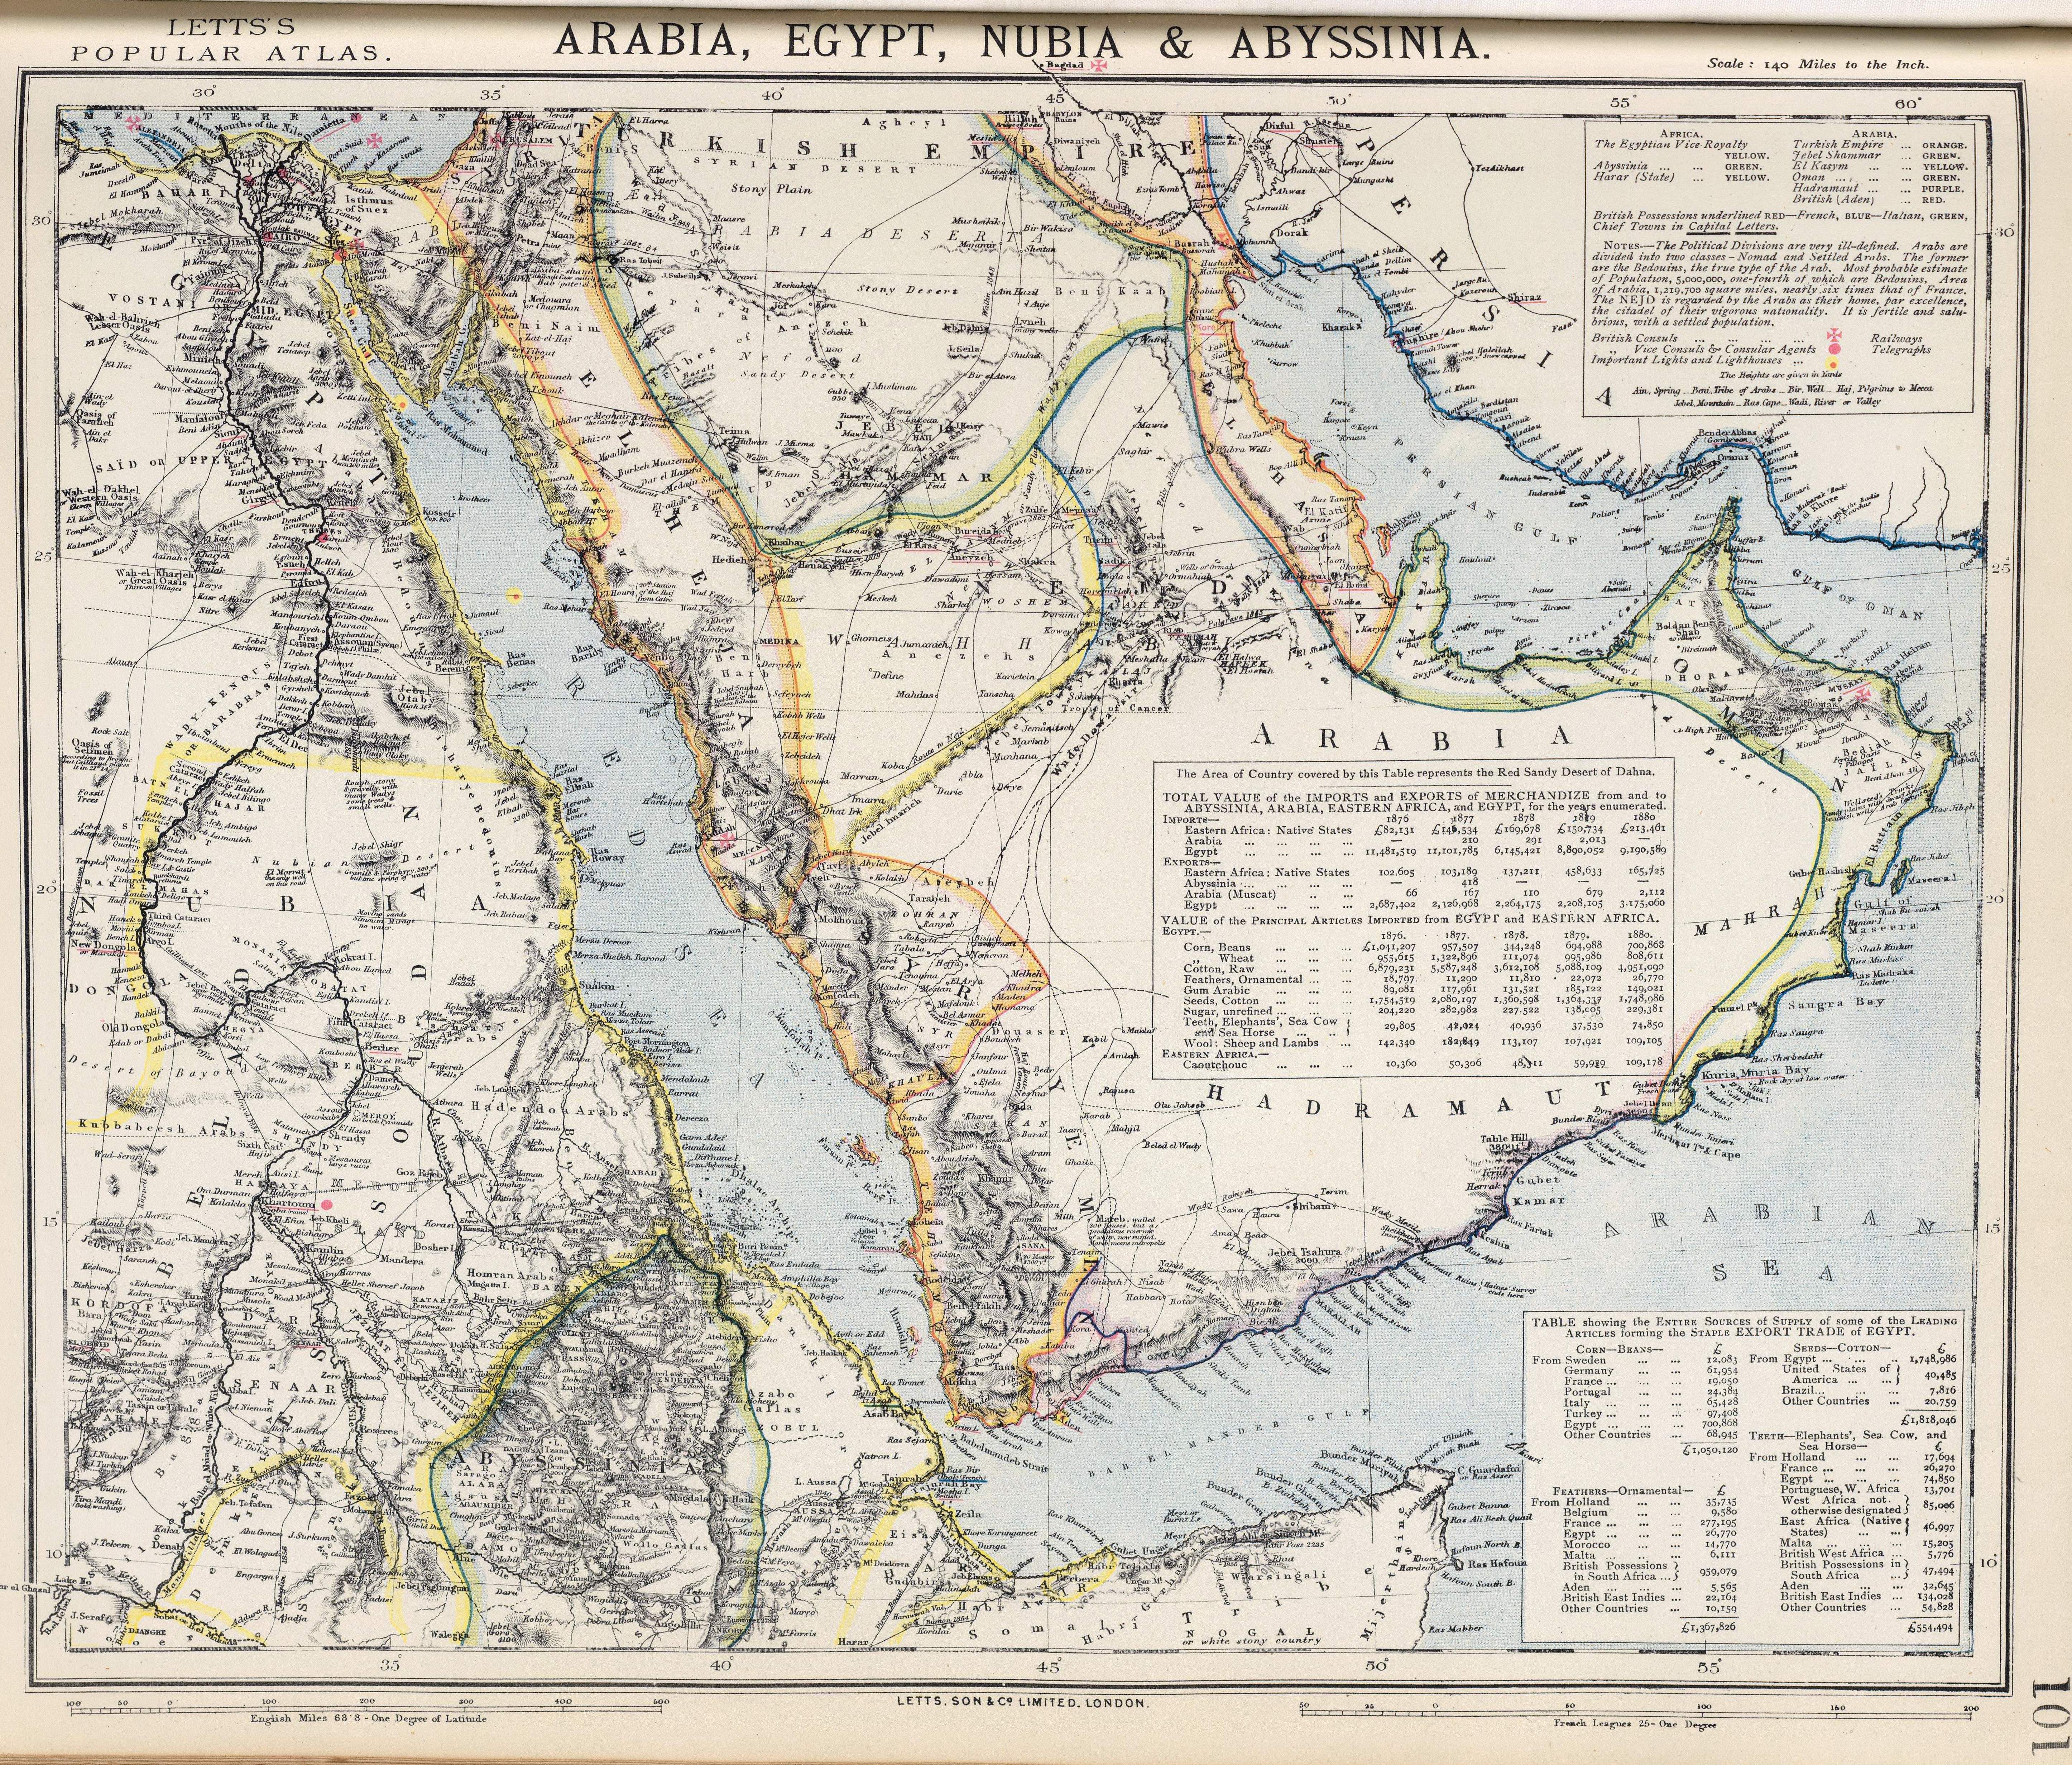 FileArabia Egypt Nubia And Abyssinia Mapjpg Wikimedia - Map of egypt 2017